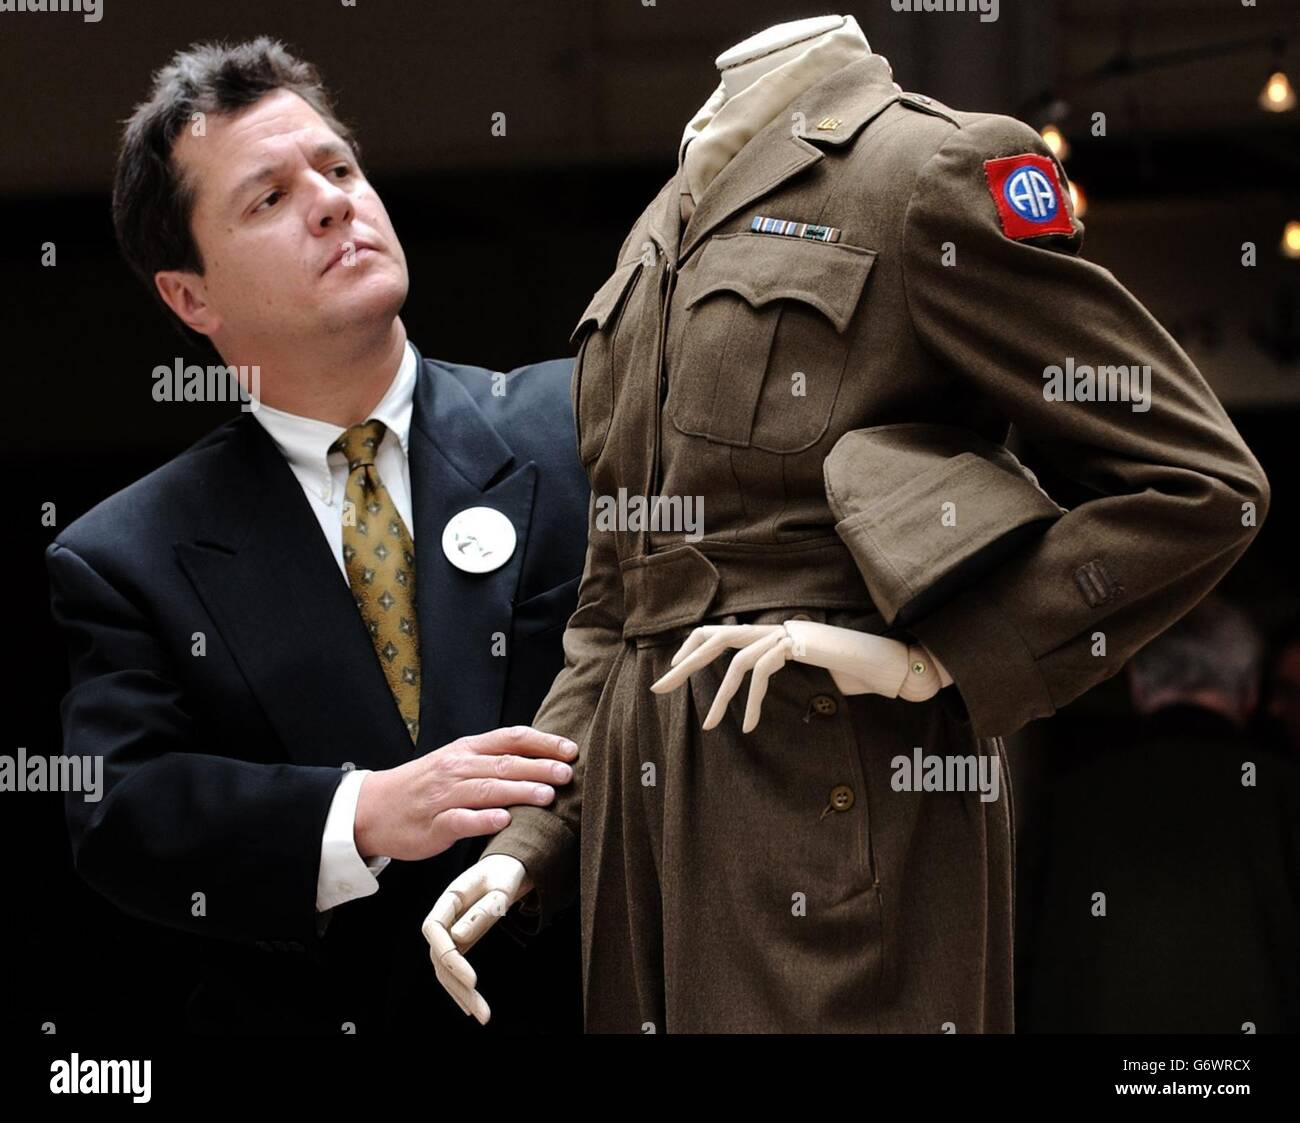 Dietrich uniforms at the Imperial War Museum - Stock Image